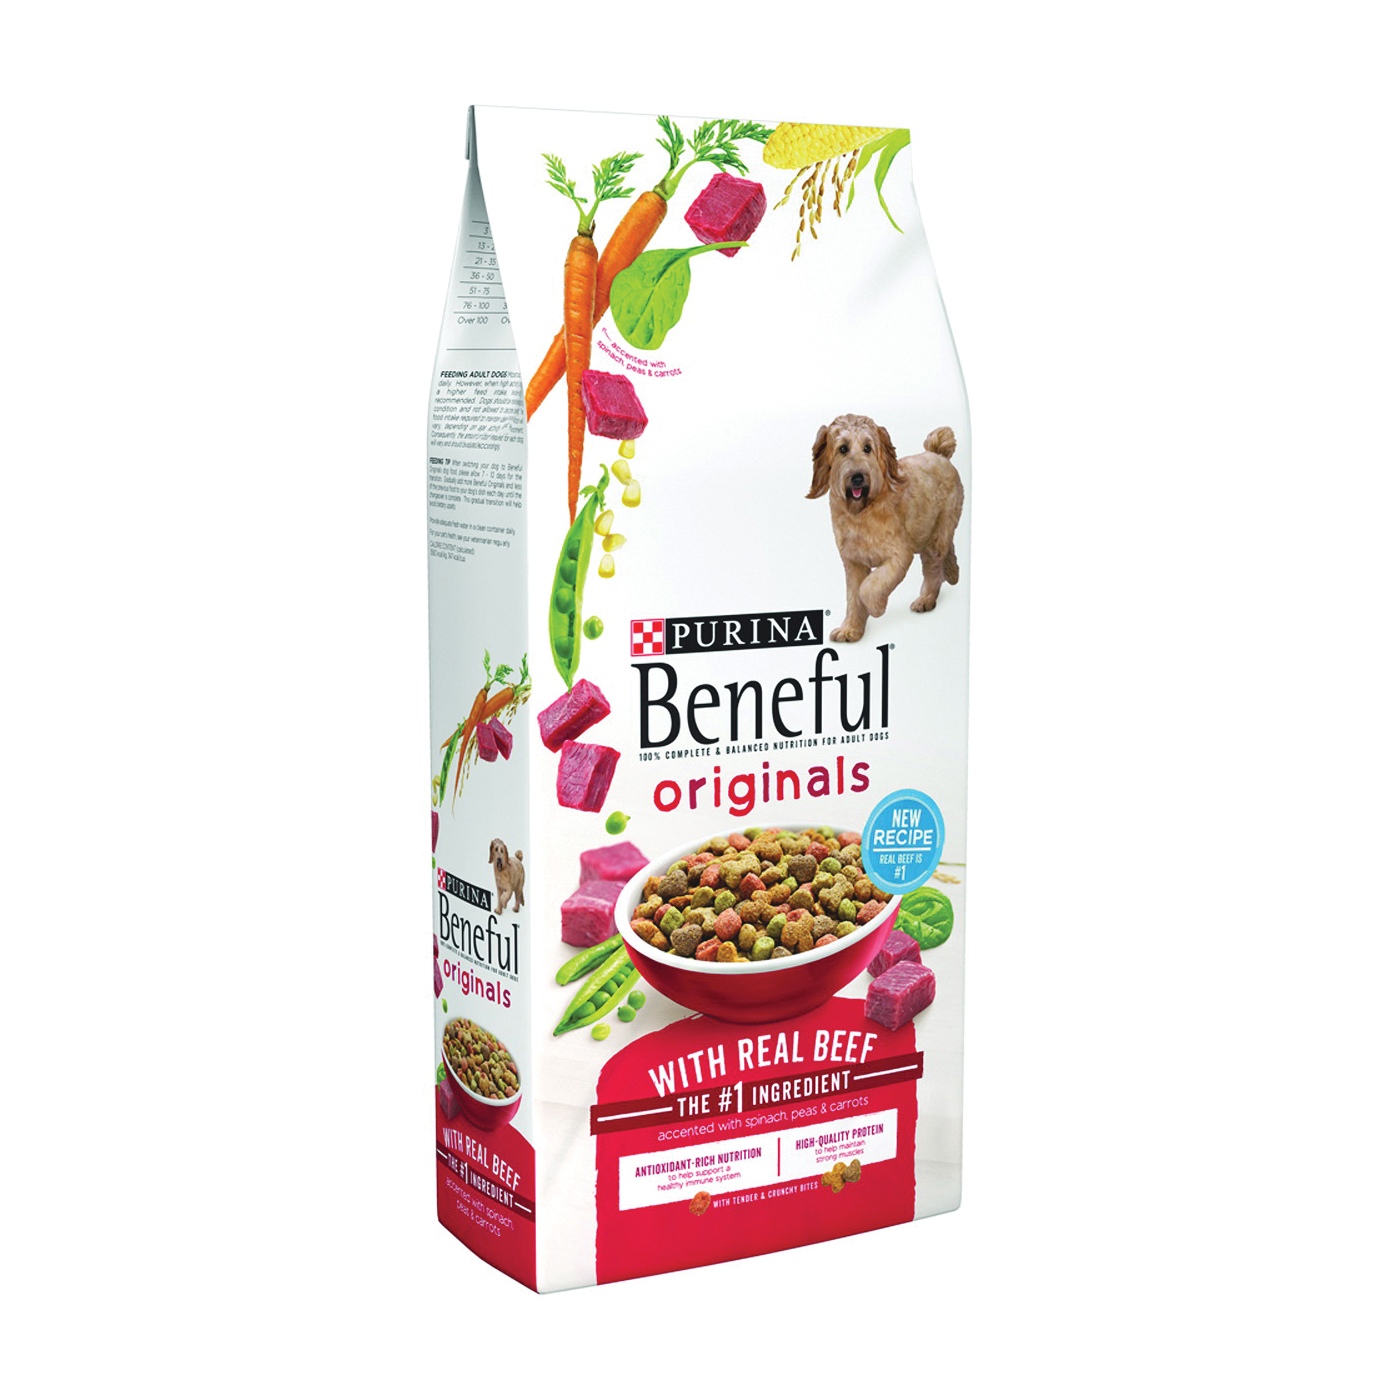 Picture of Beneful 1780013477 Dry Dog Food, 31.1 lb Package, Bag